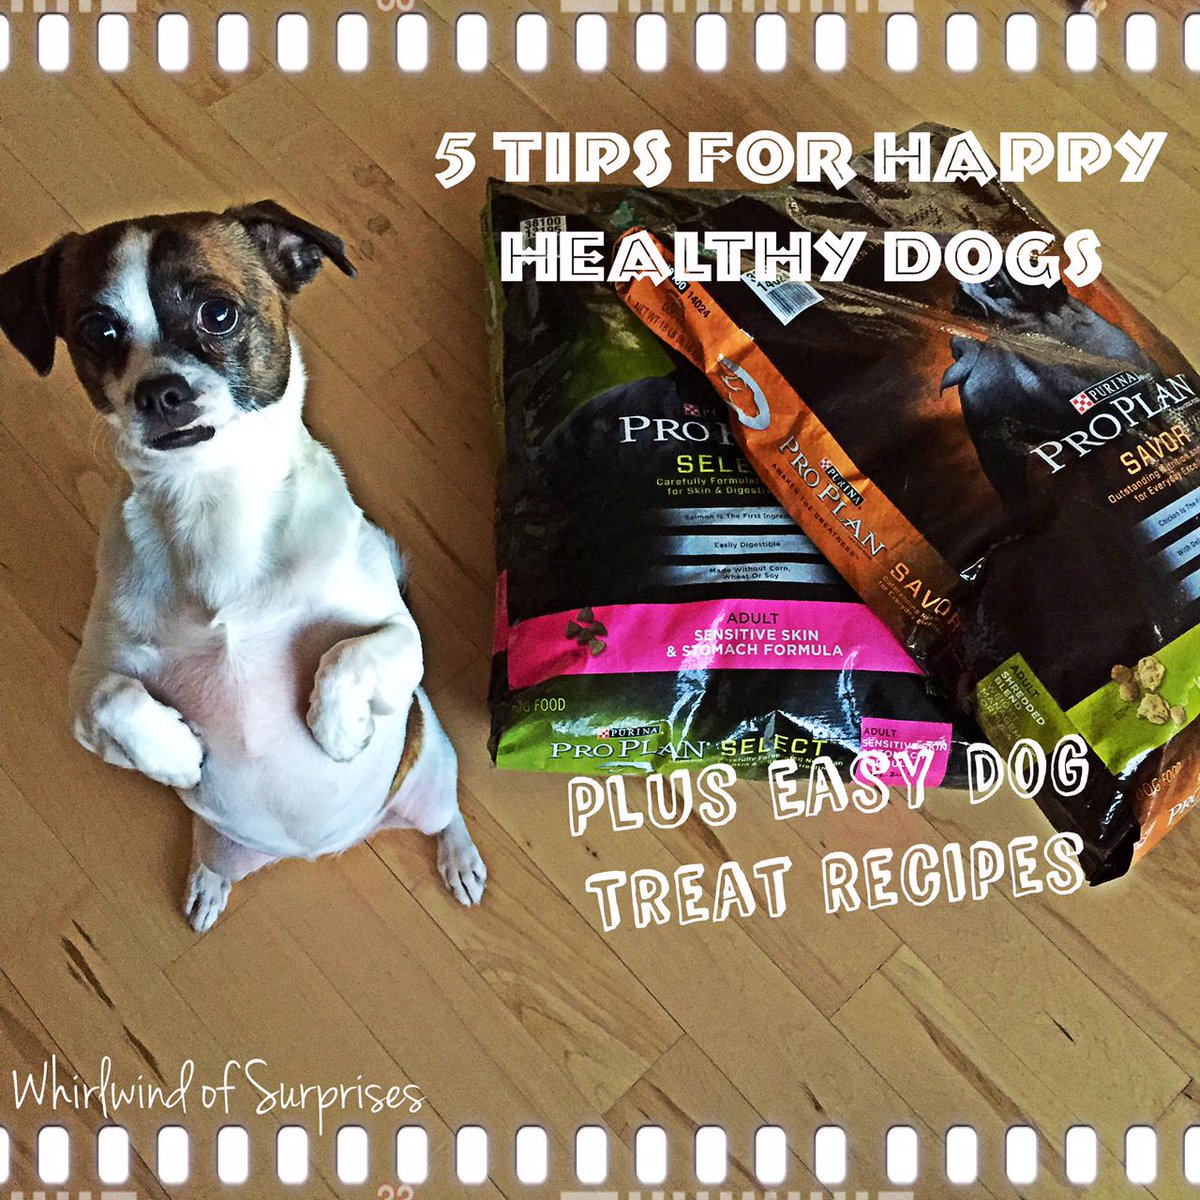 5 Tips for Happy Healthy Dogs, Easy Dog Treat Recipes